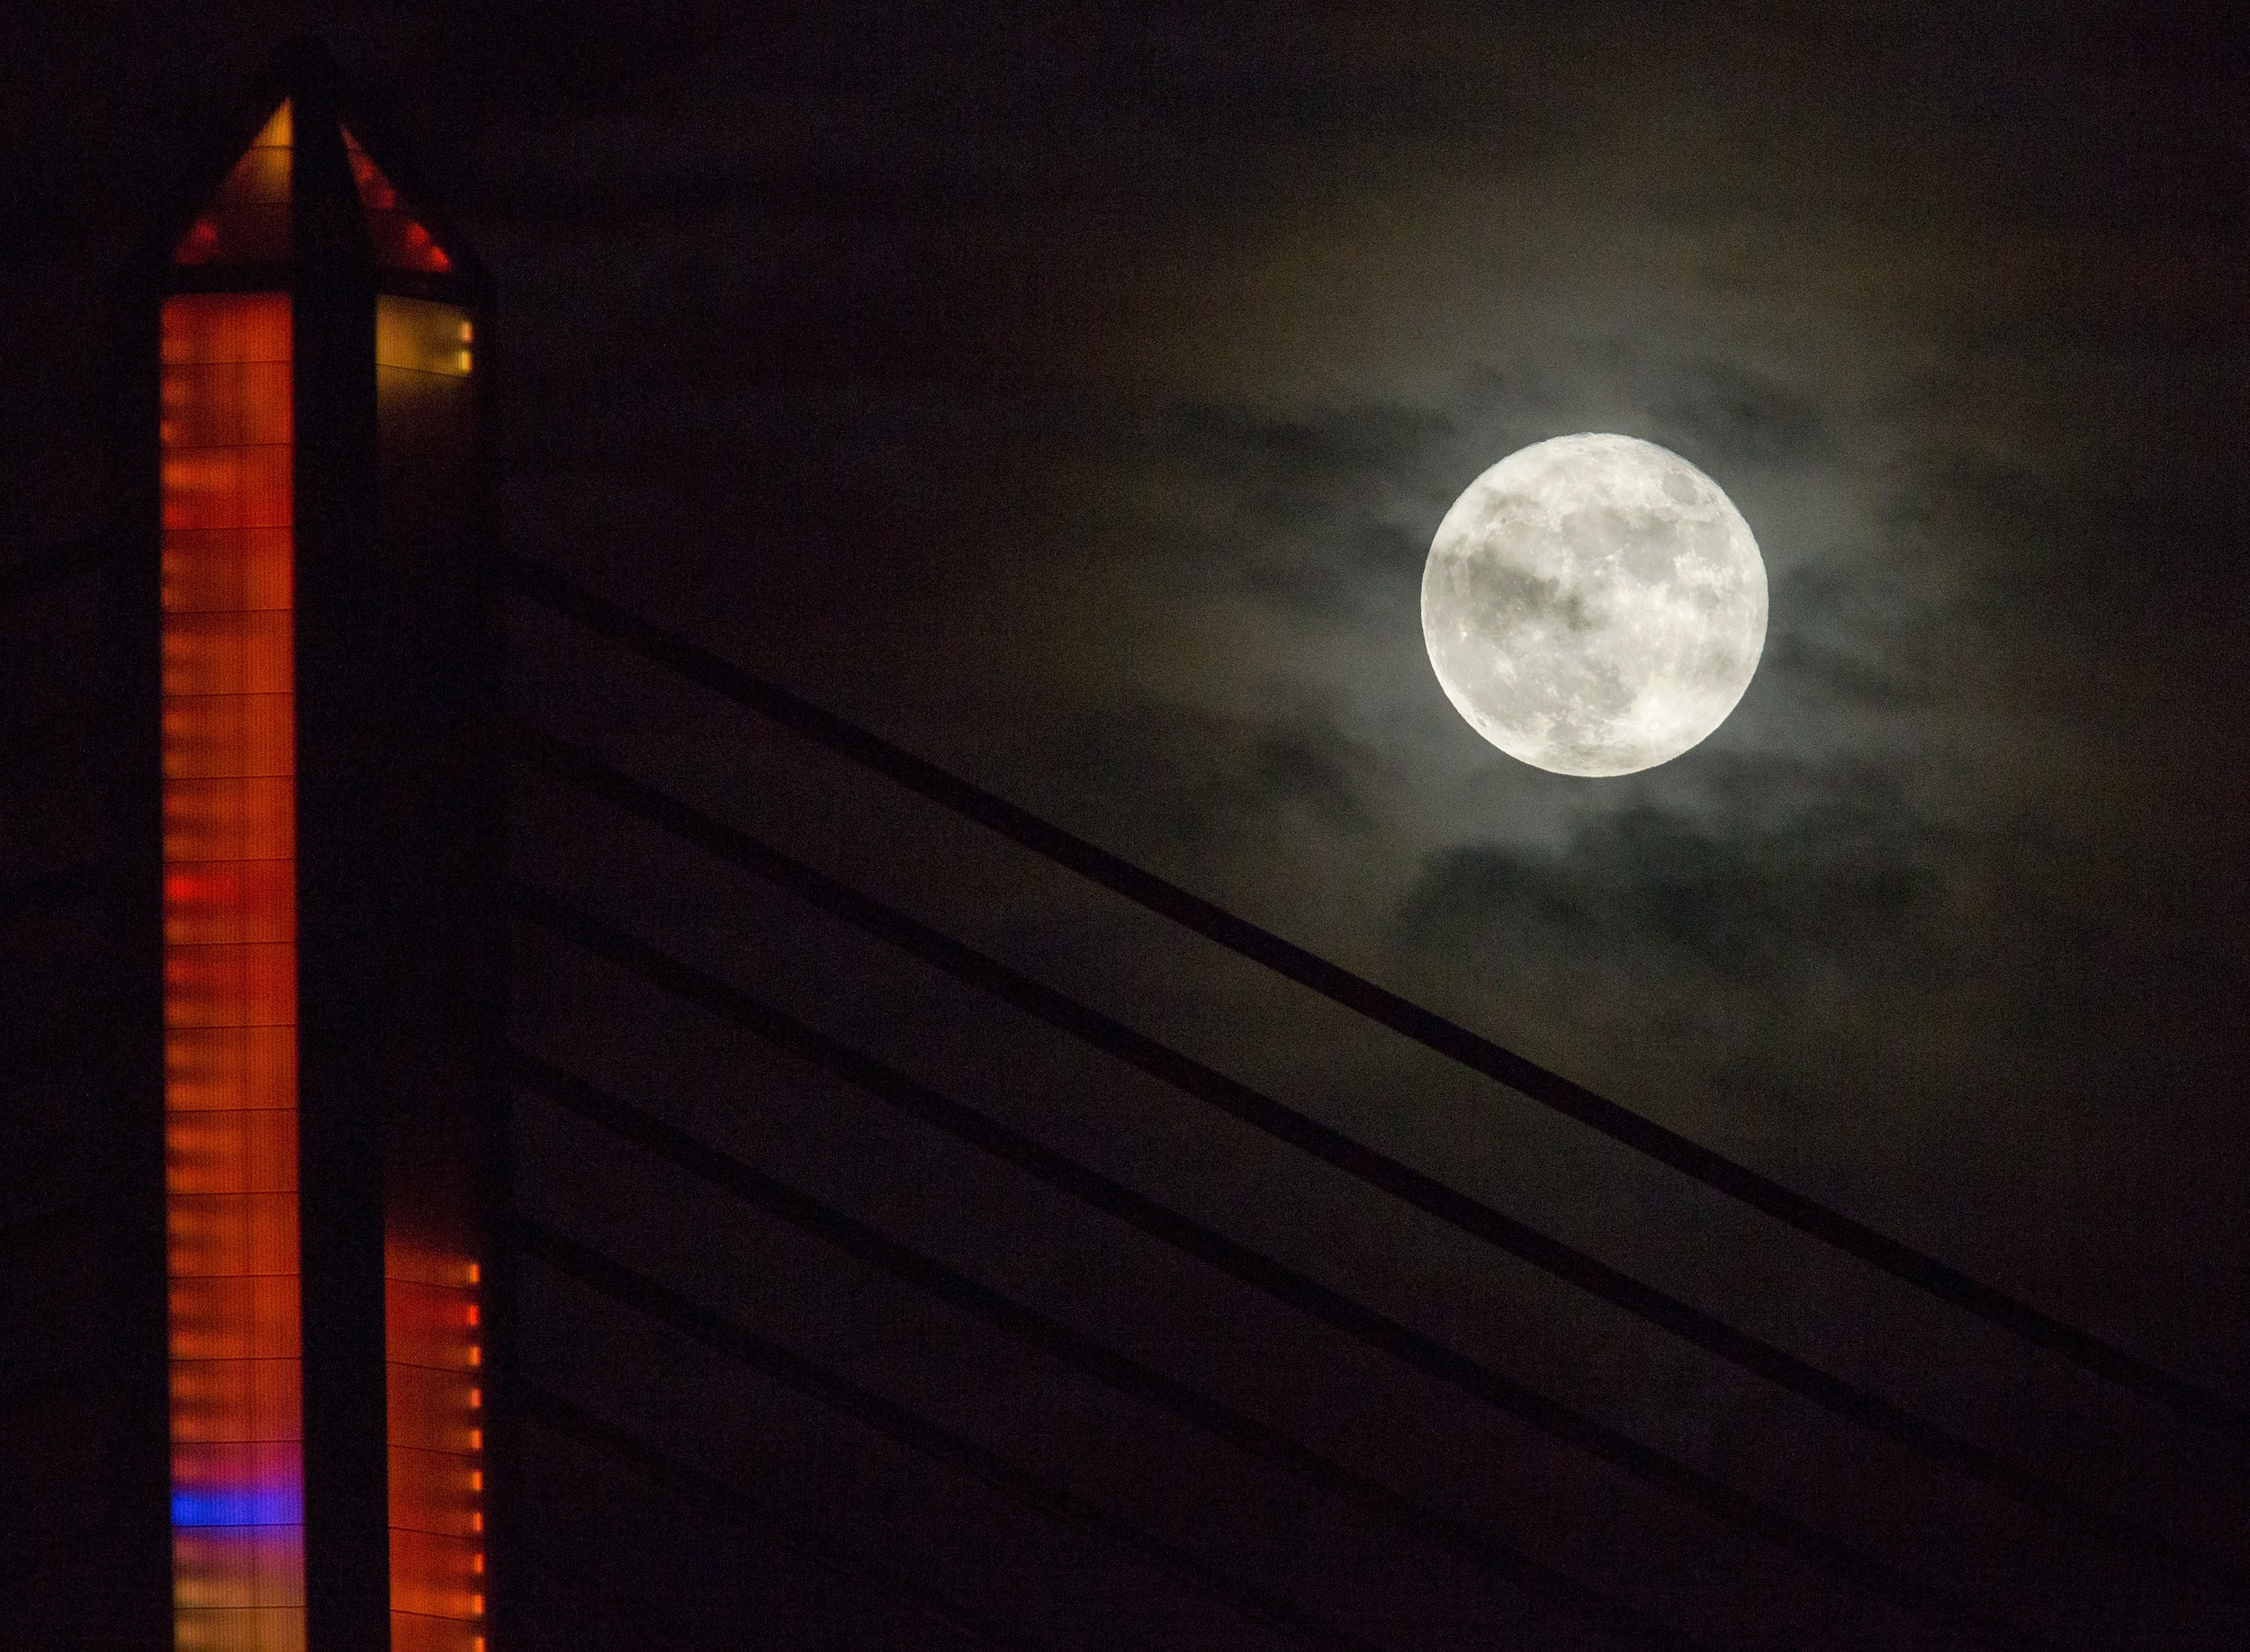 The super moon over the Veteran's Glass City Skyway Bridge in downtown Toledo photographed on Monday, Nov. 14, 2016.